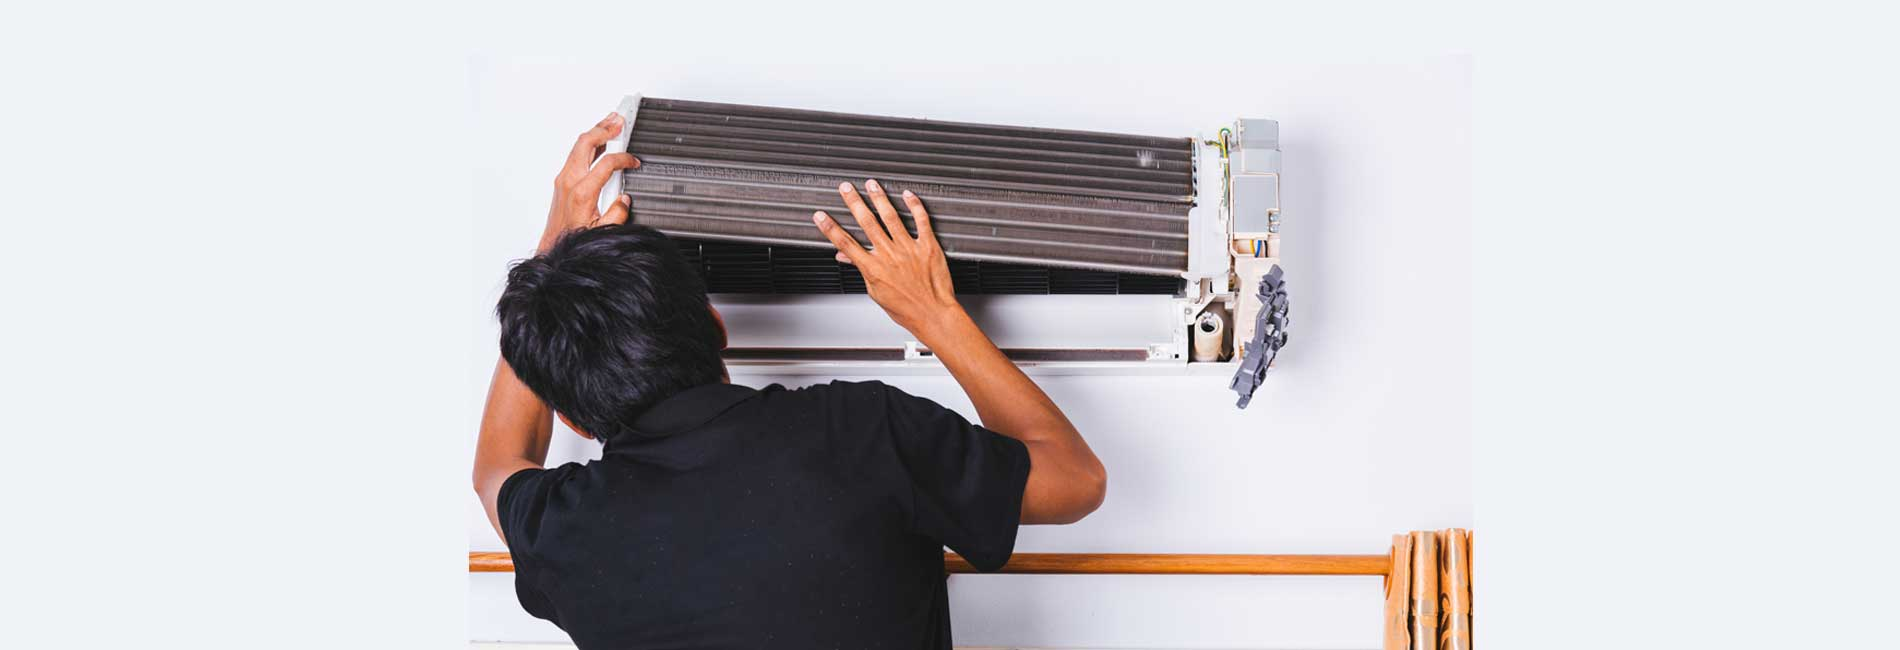 AC Uninstallation in Ekkaduthangal